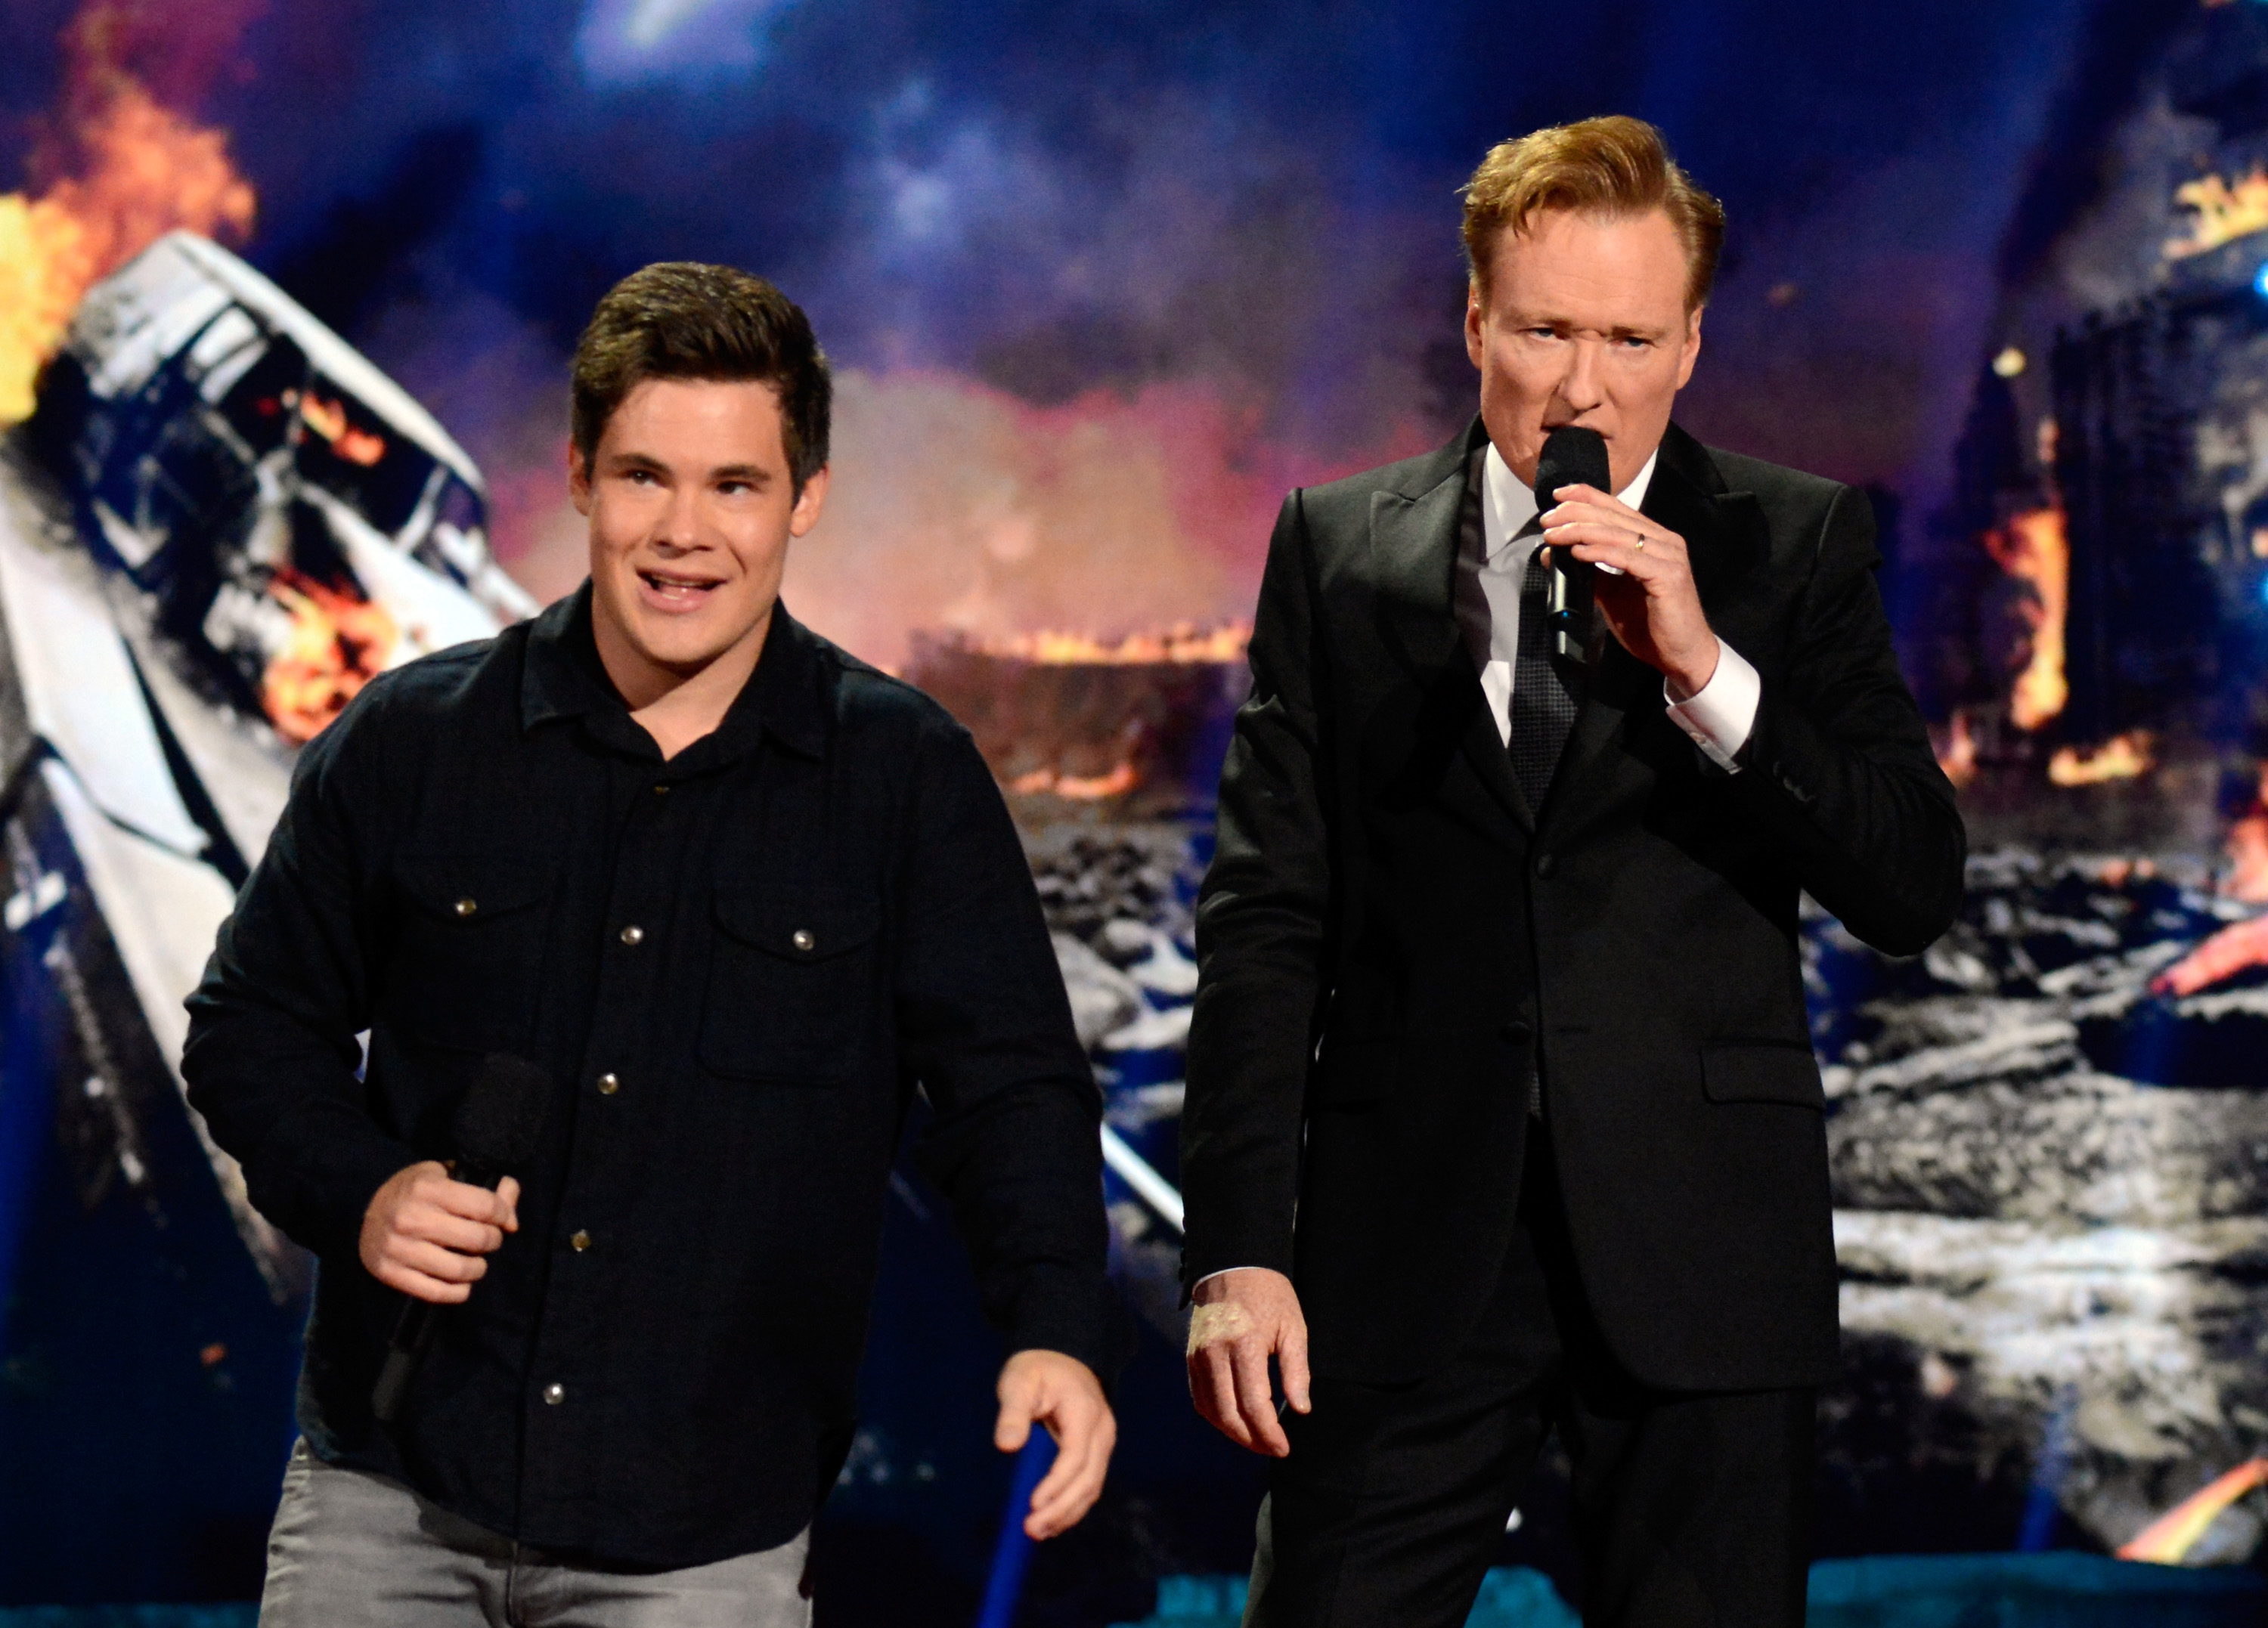 LOS ANGELES, CA - APRIL 13:  Actor Adam DeVine (L) and host Conan O'Brien speak onstage at the 2014 MTV Movie Awards at Nokia